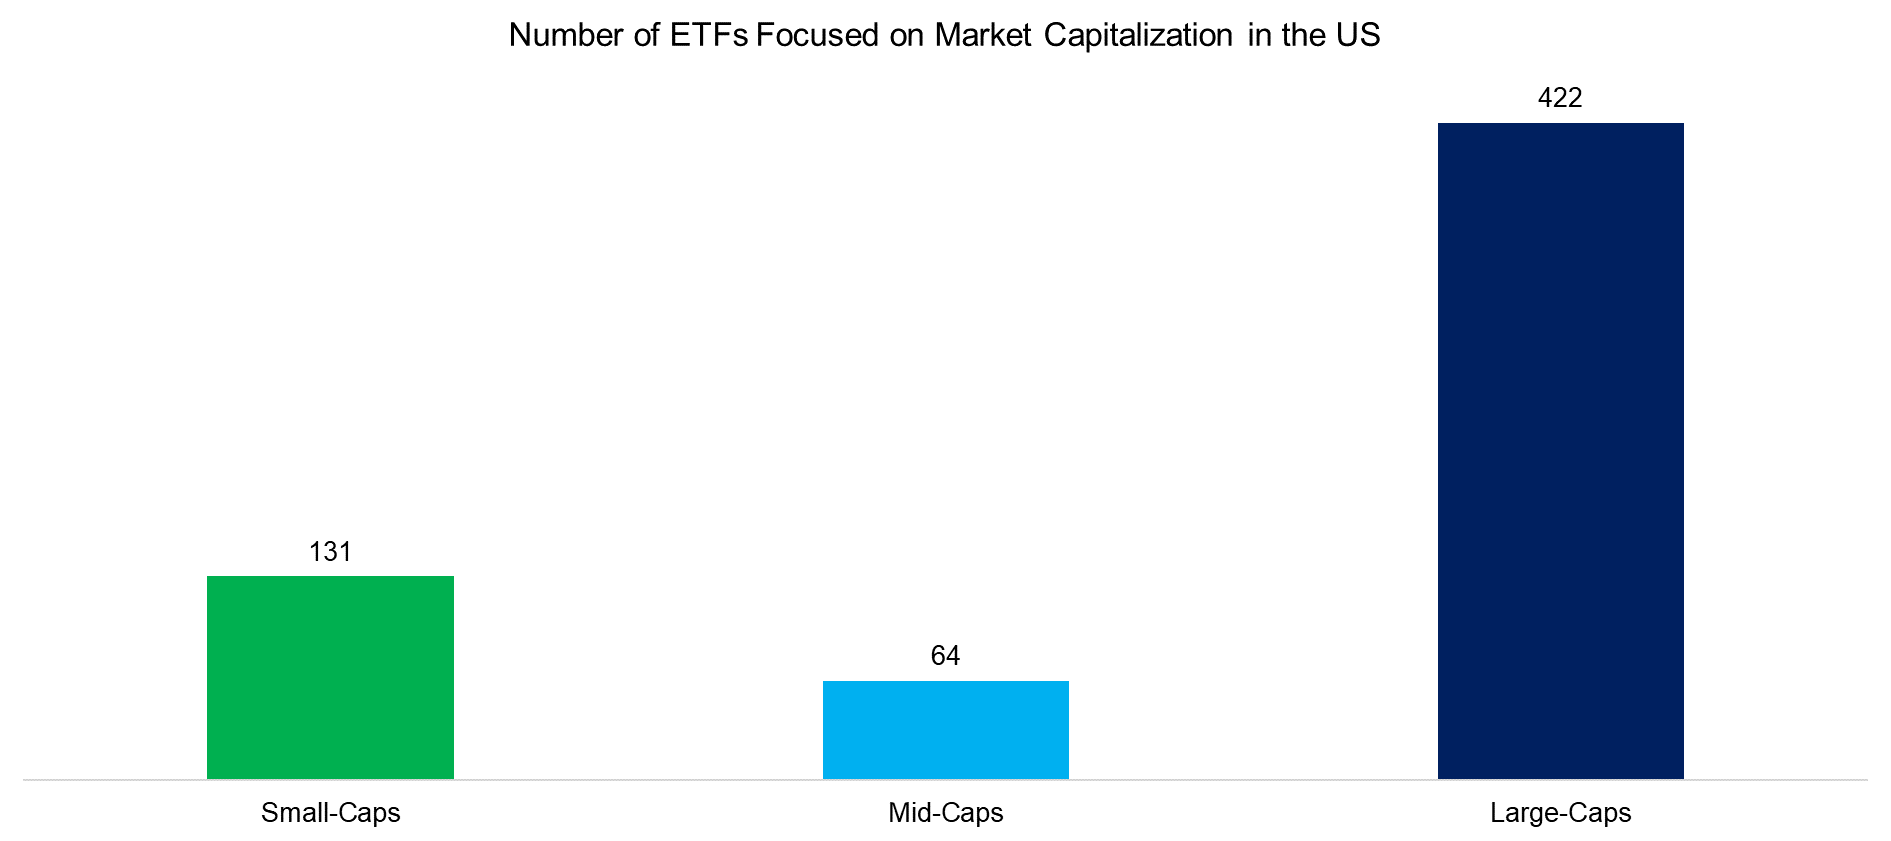 Number of ETFs Focused on Market Capitalization in the US